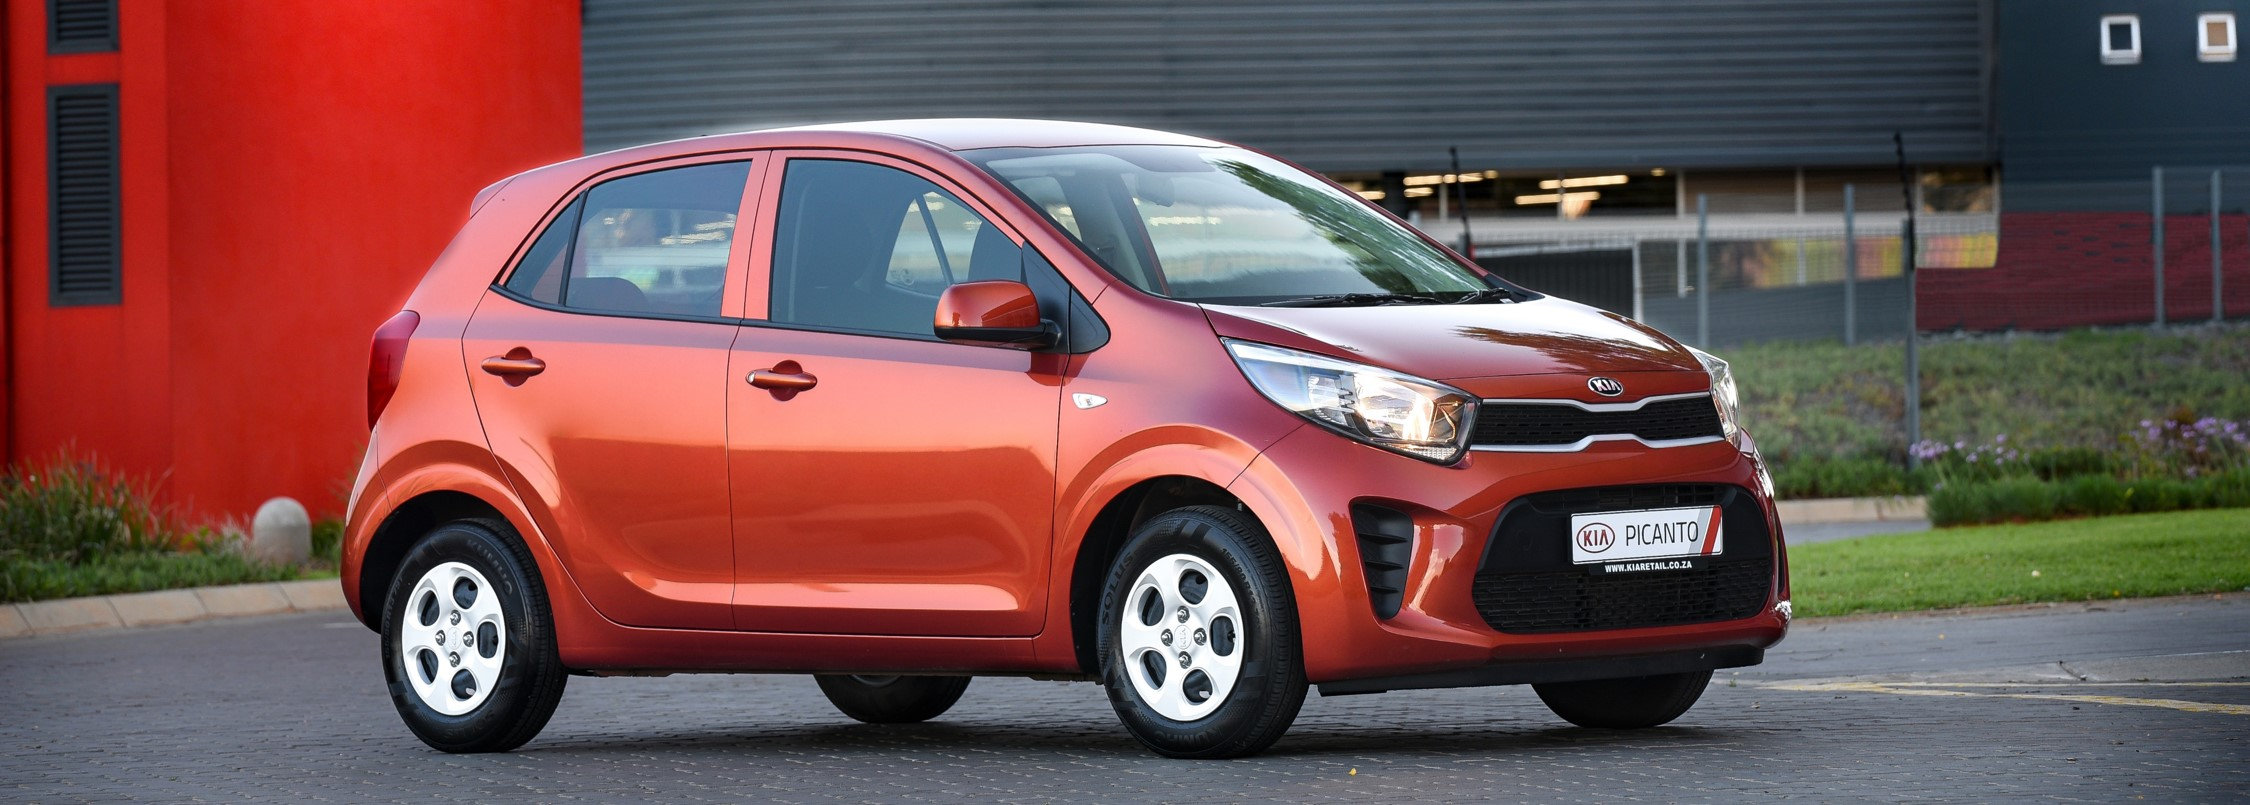 Kia Picanto, now with free fuel